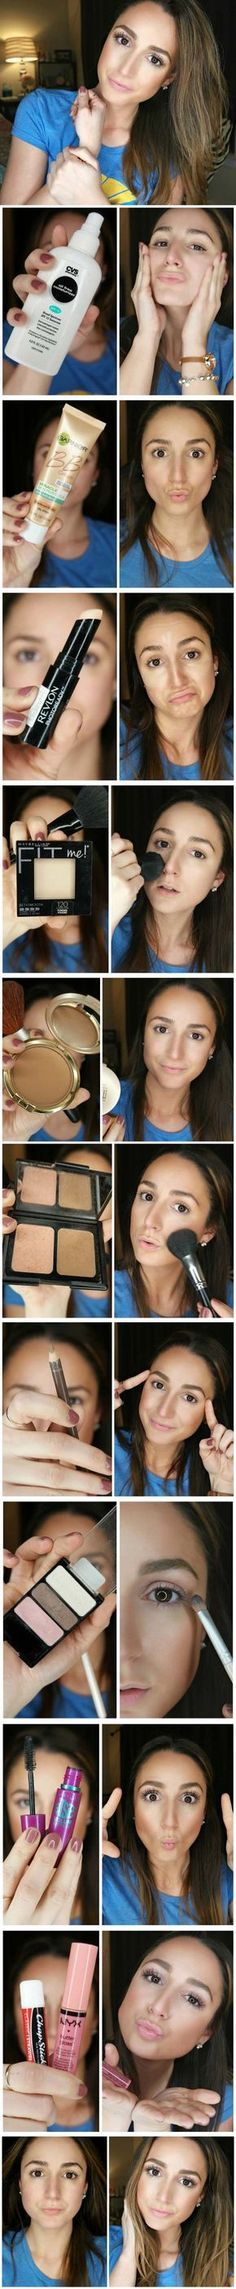 Makeup For Beginners With Products And Step By Step Tutorial Lists That Cover What To Buy, How To Apply, And Basic Tips And Tricks For Make Up Beginners. Curious How To Put On Eyeshadow Or Contour For An Easy And Natural Look? These Tutorials And Hacks Sh